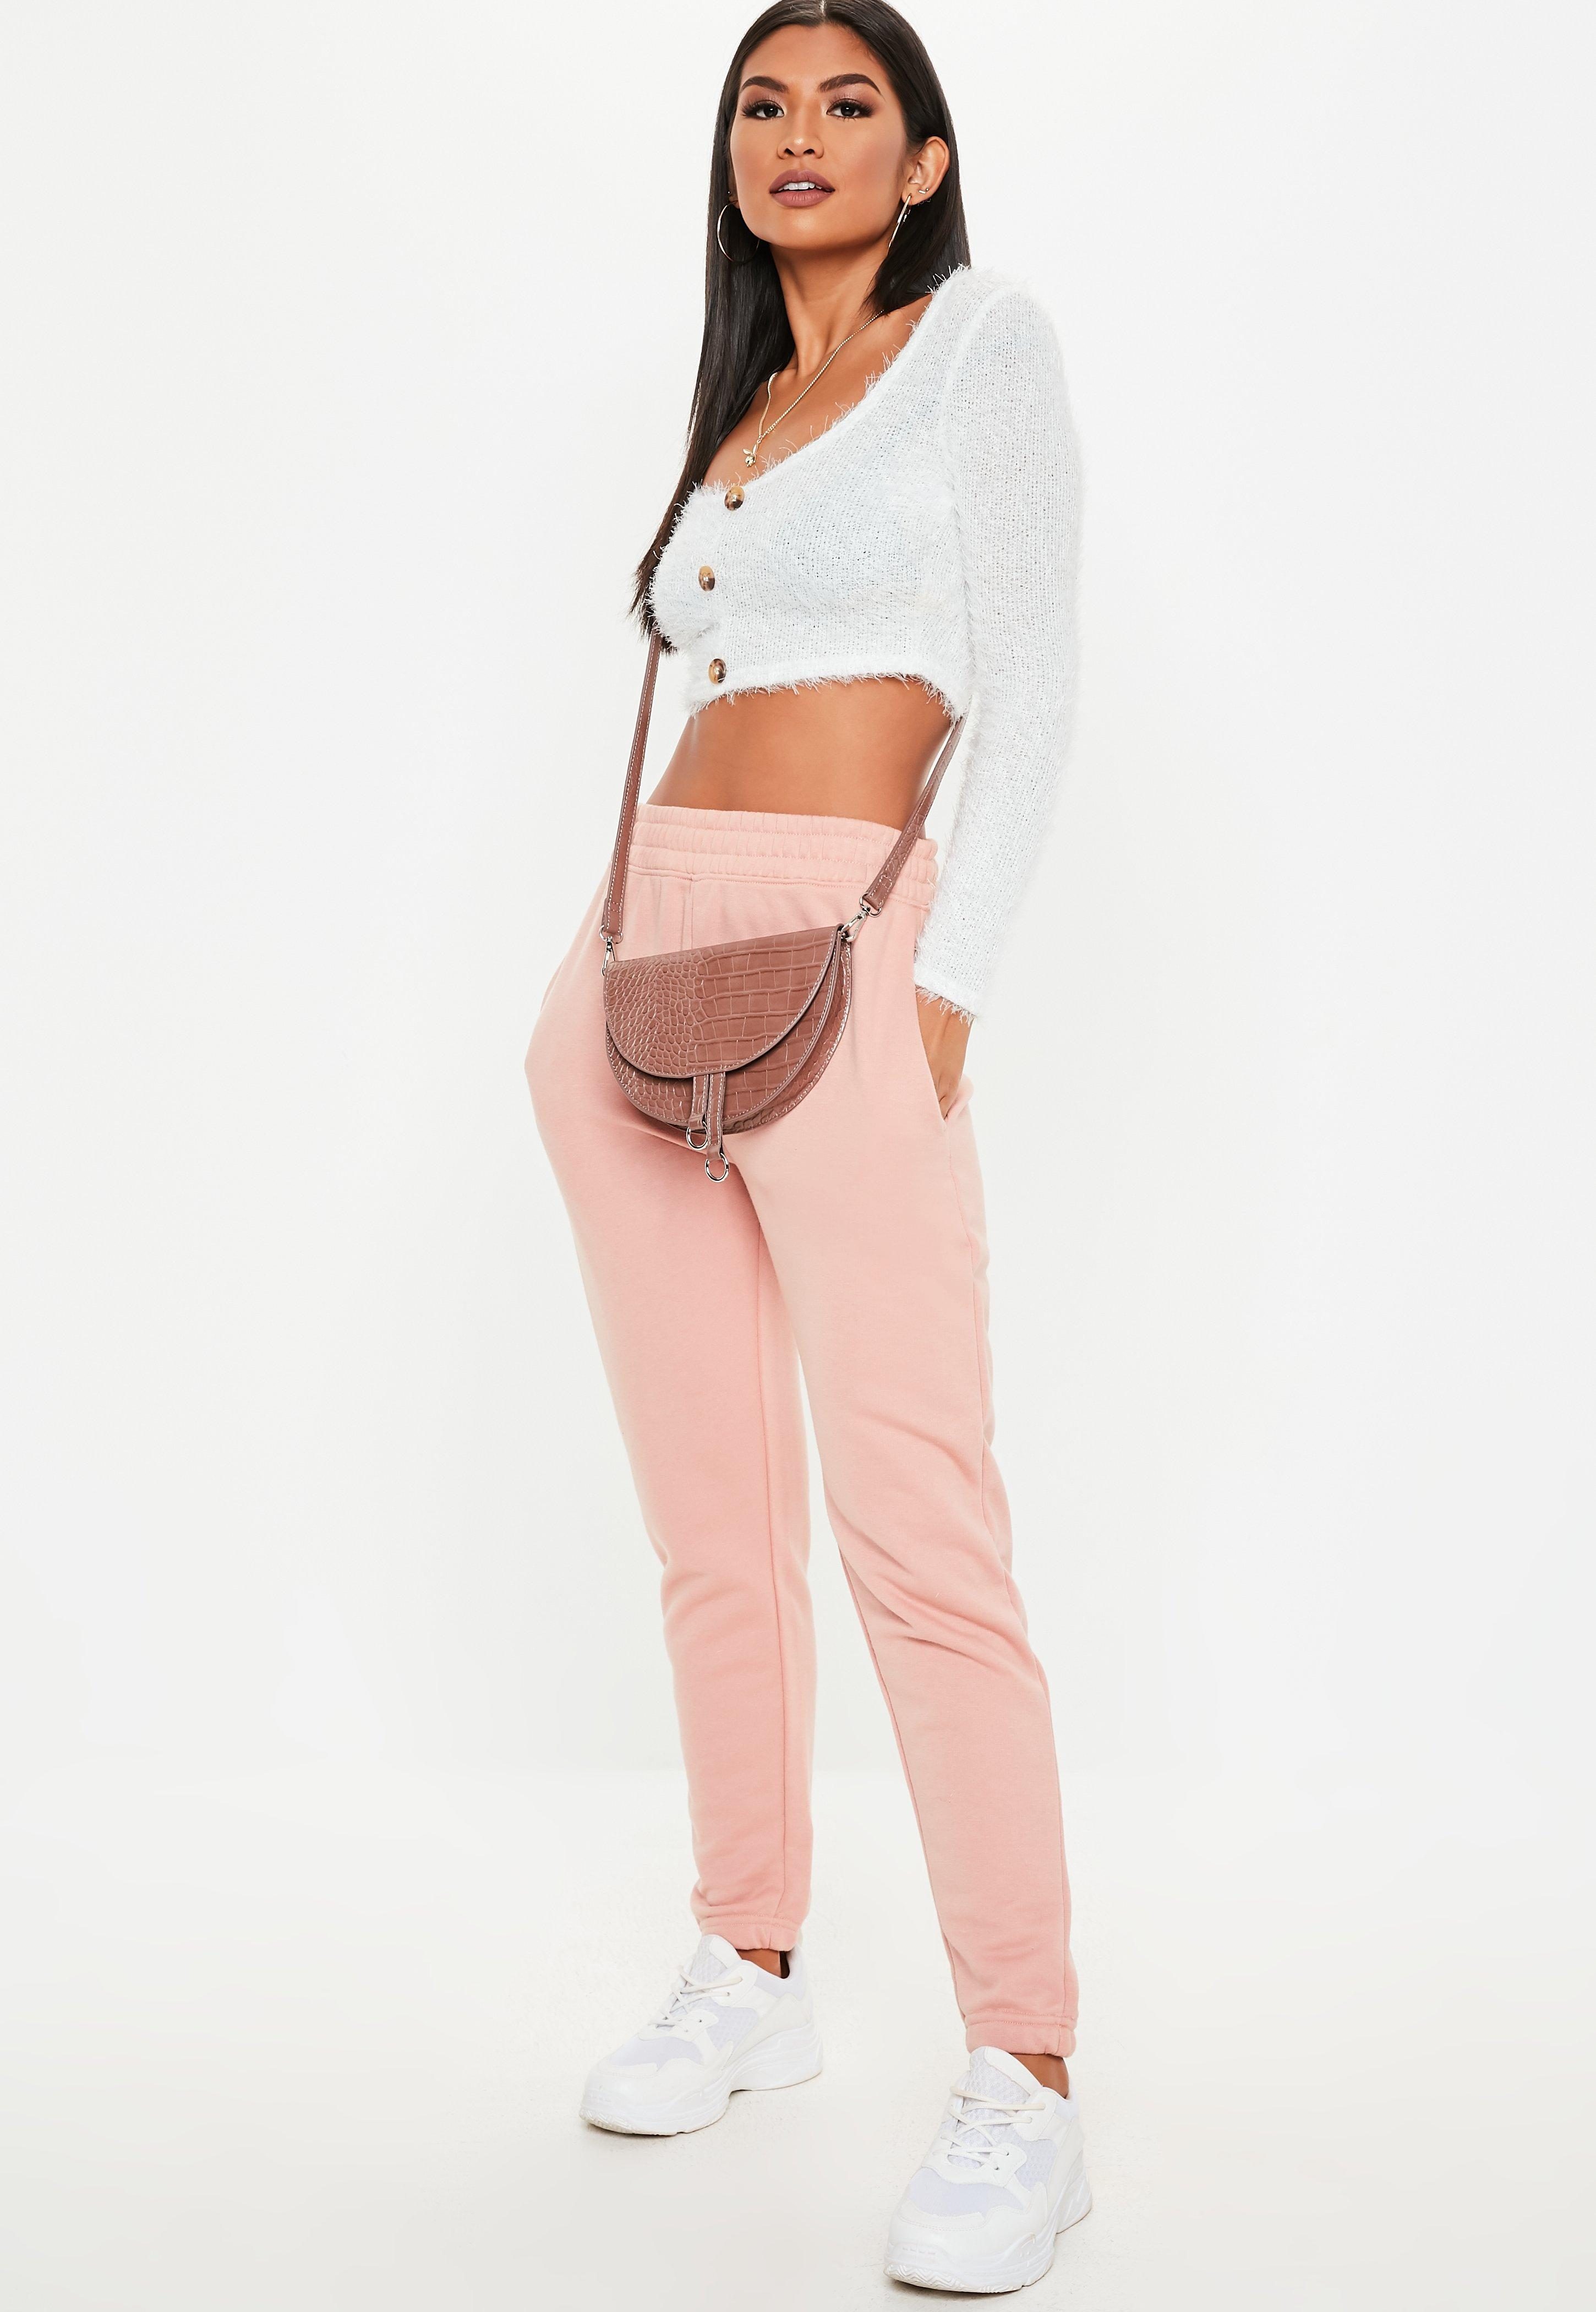 3421fa4d51cc9 Missguided - White Fluffy Horn Button Long Sleeve Crop Top - Lyst. View  fullscreen